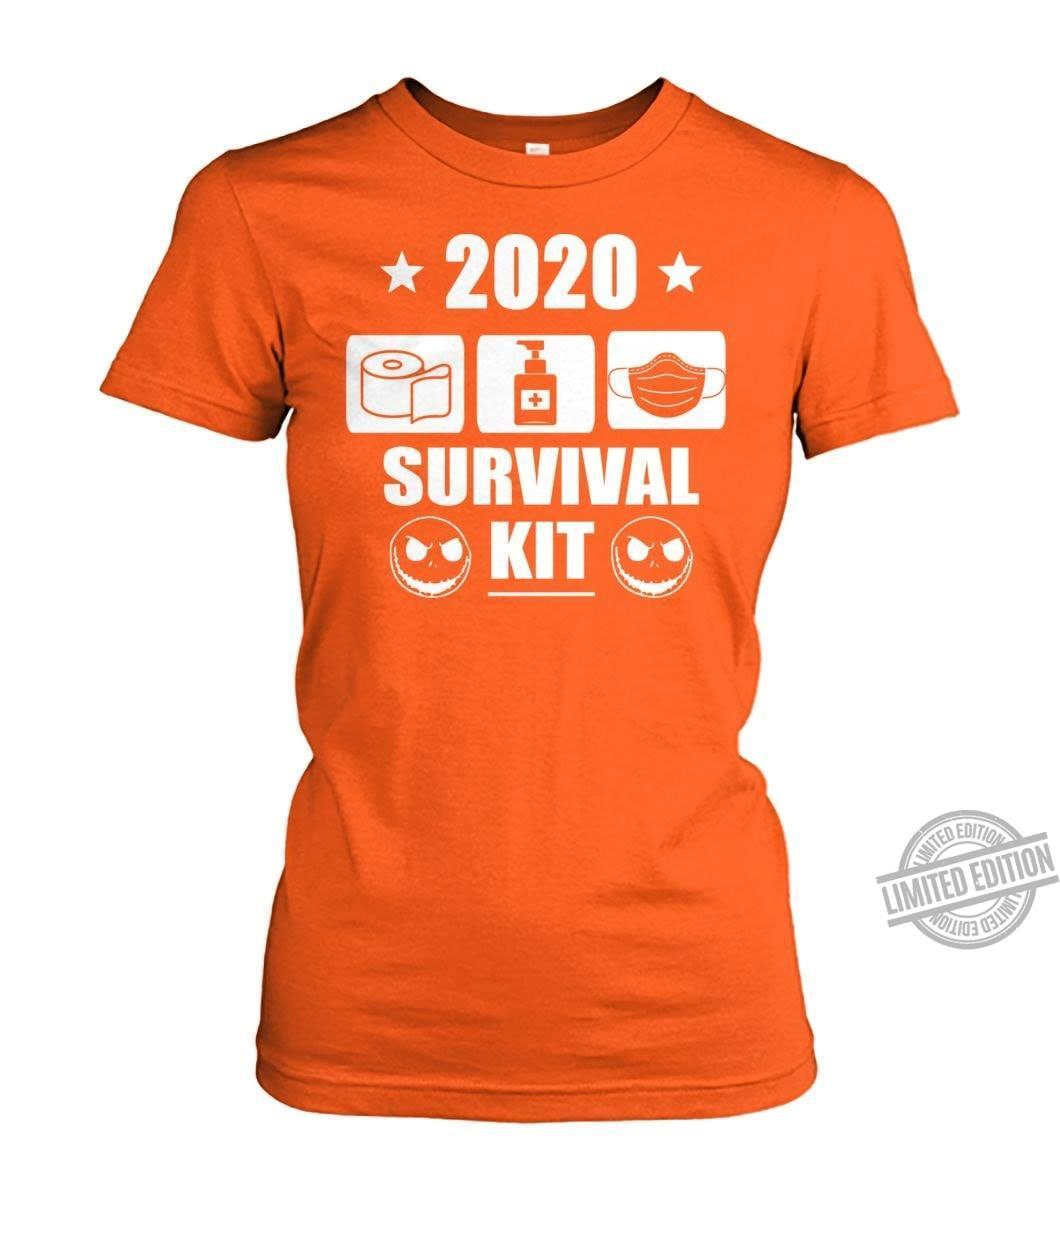 2020 Survival Kit Shirt